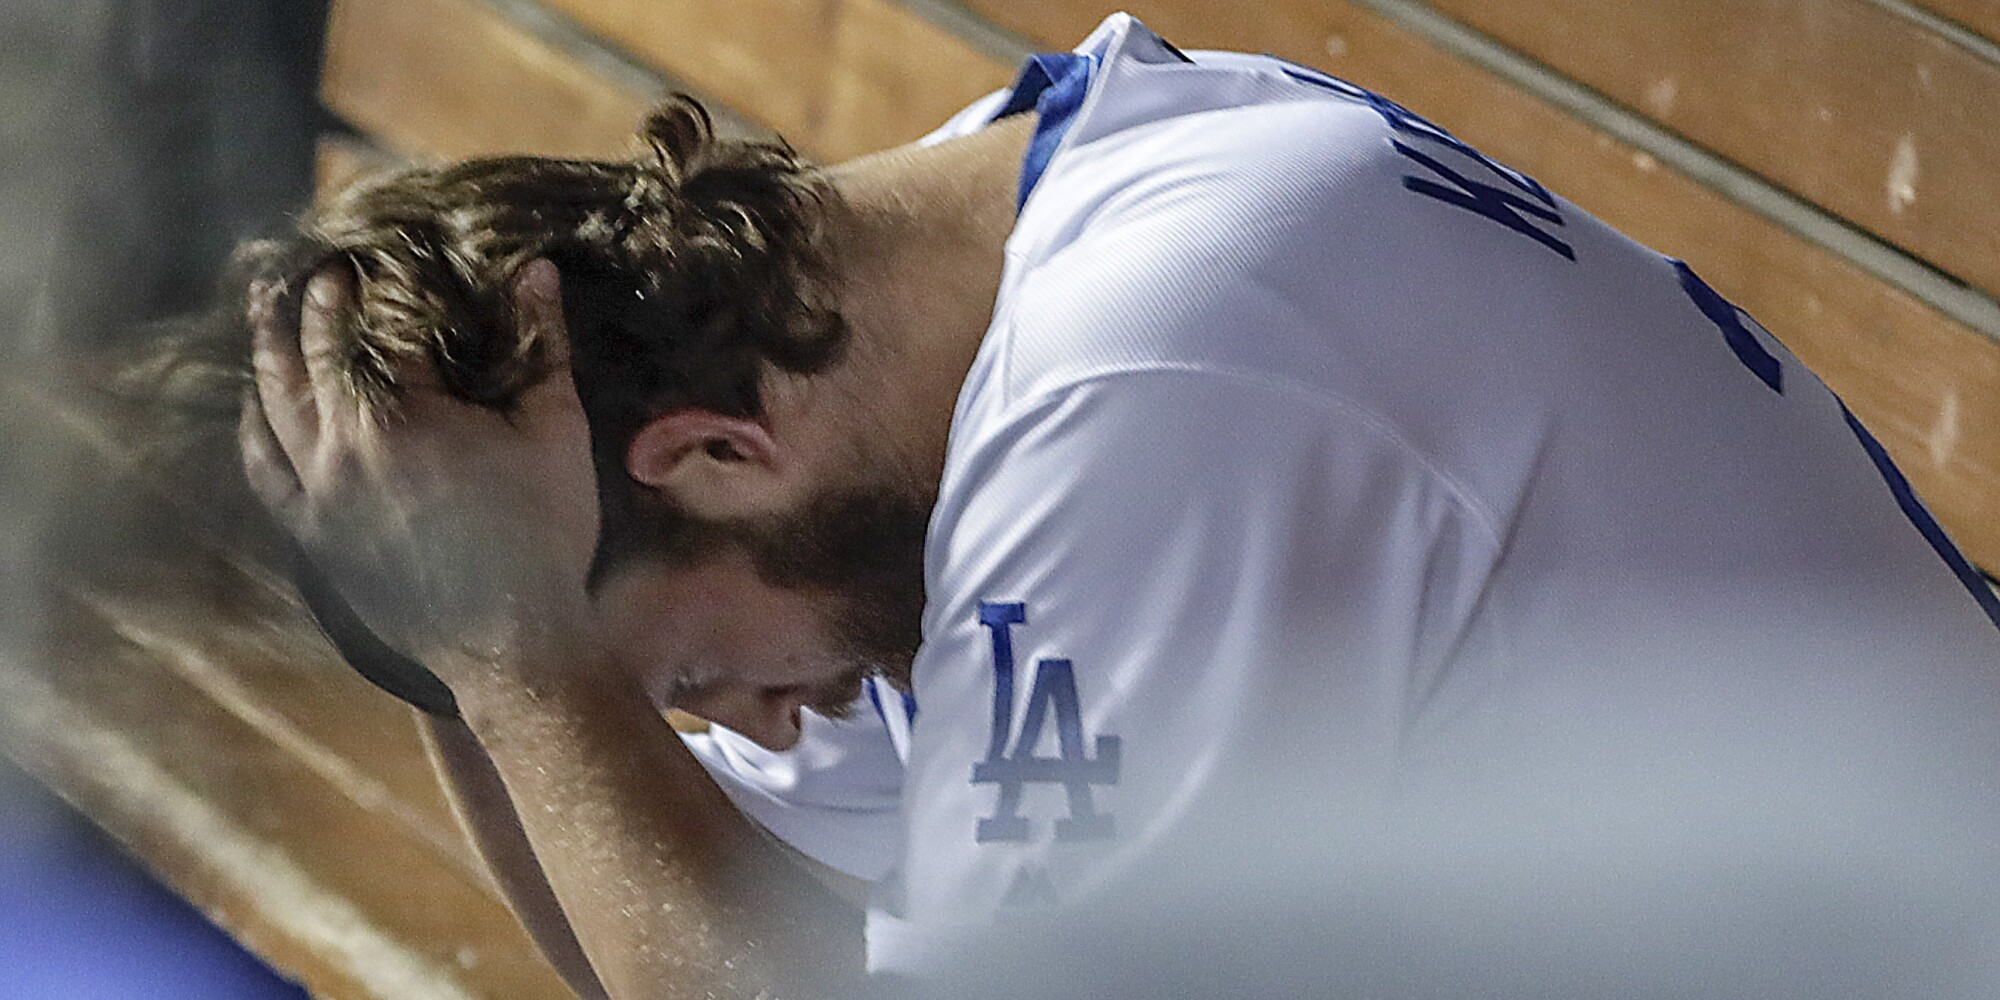 Clayton Kershaw in the dugout after giving up consecutive homers in the 8th inning in game 5 of the National League Division Series at Dodger Stadium.